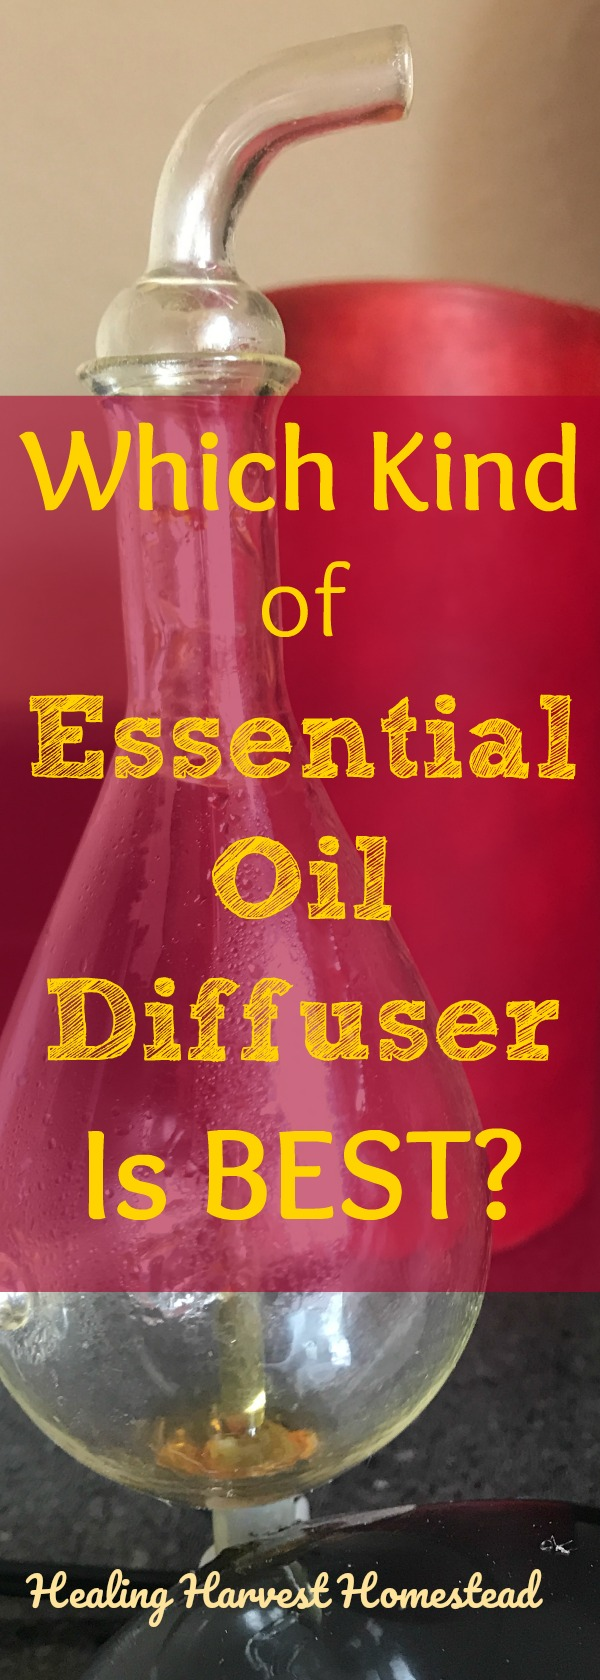 Confused about which kind of essential oil diffuser you should buy? Find out what kinds of essential oil diffusers are available, how they differ, and which kind of essential oil diffuser is just right for you! Which Kind of Essential Oil Diffuser is BEST?